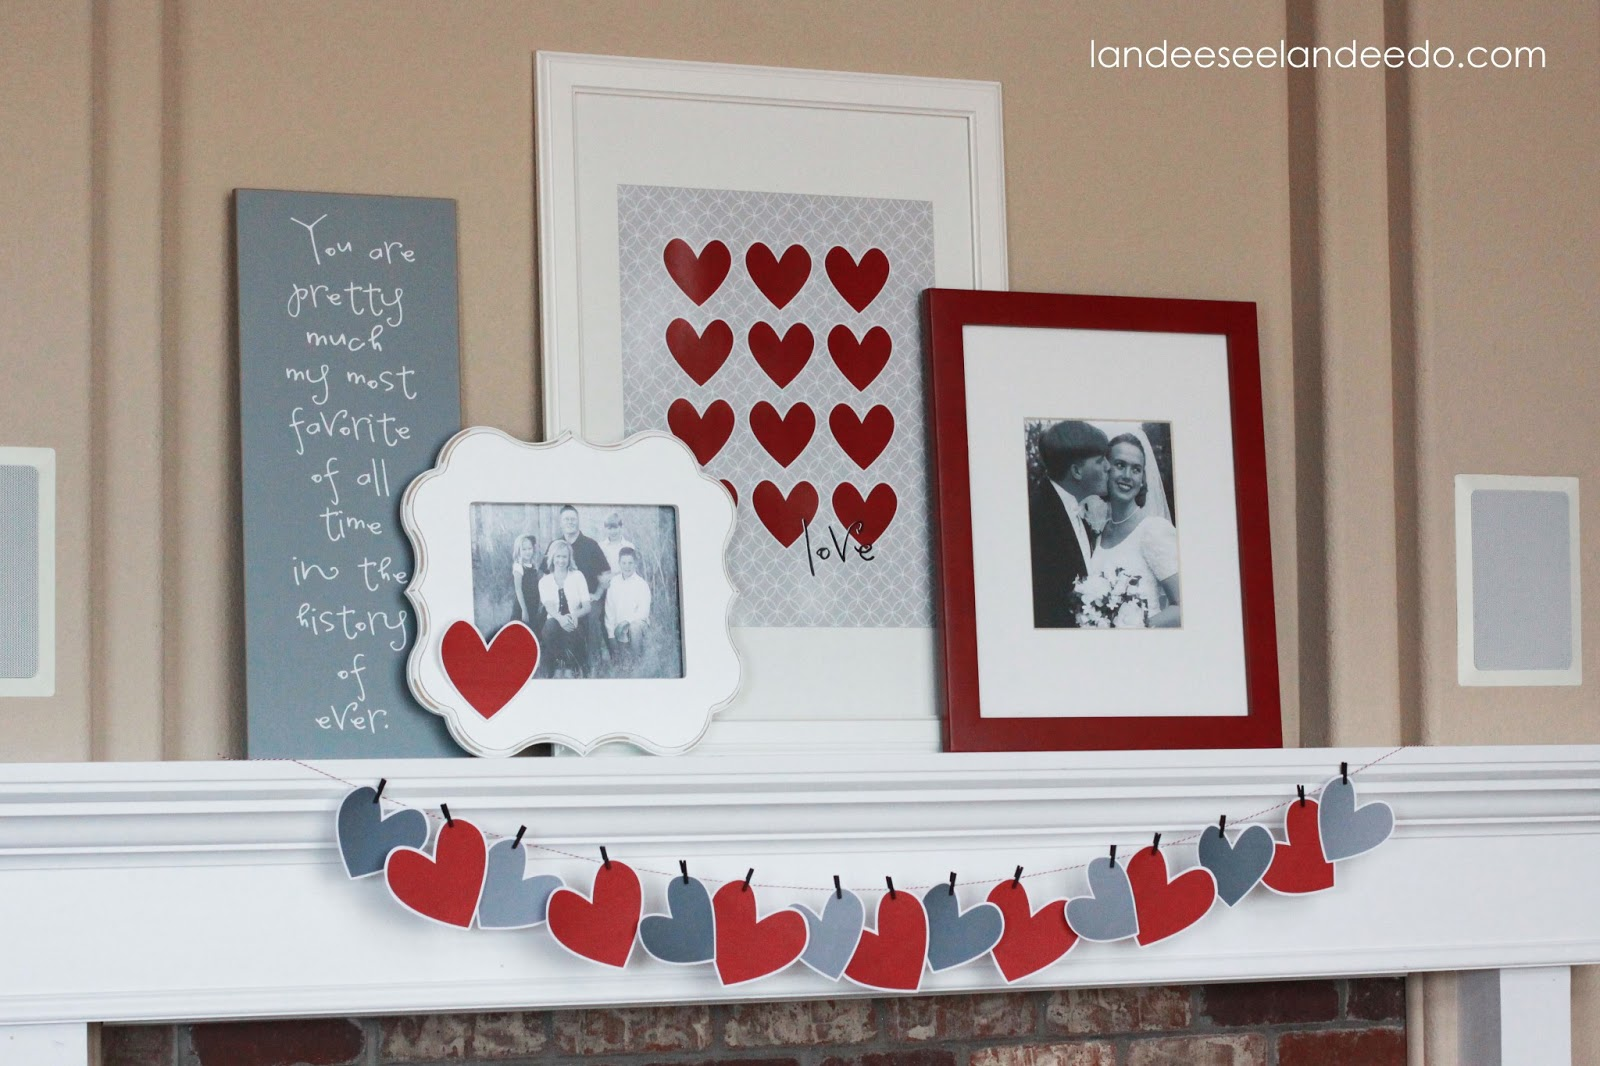 image about Valentine's Day Printable Decorations referred to as Valentines Working day Mantel Decor and Printable -